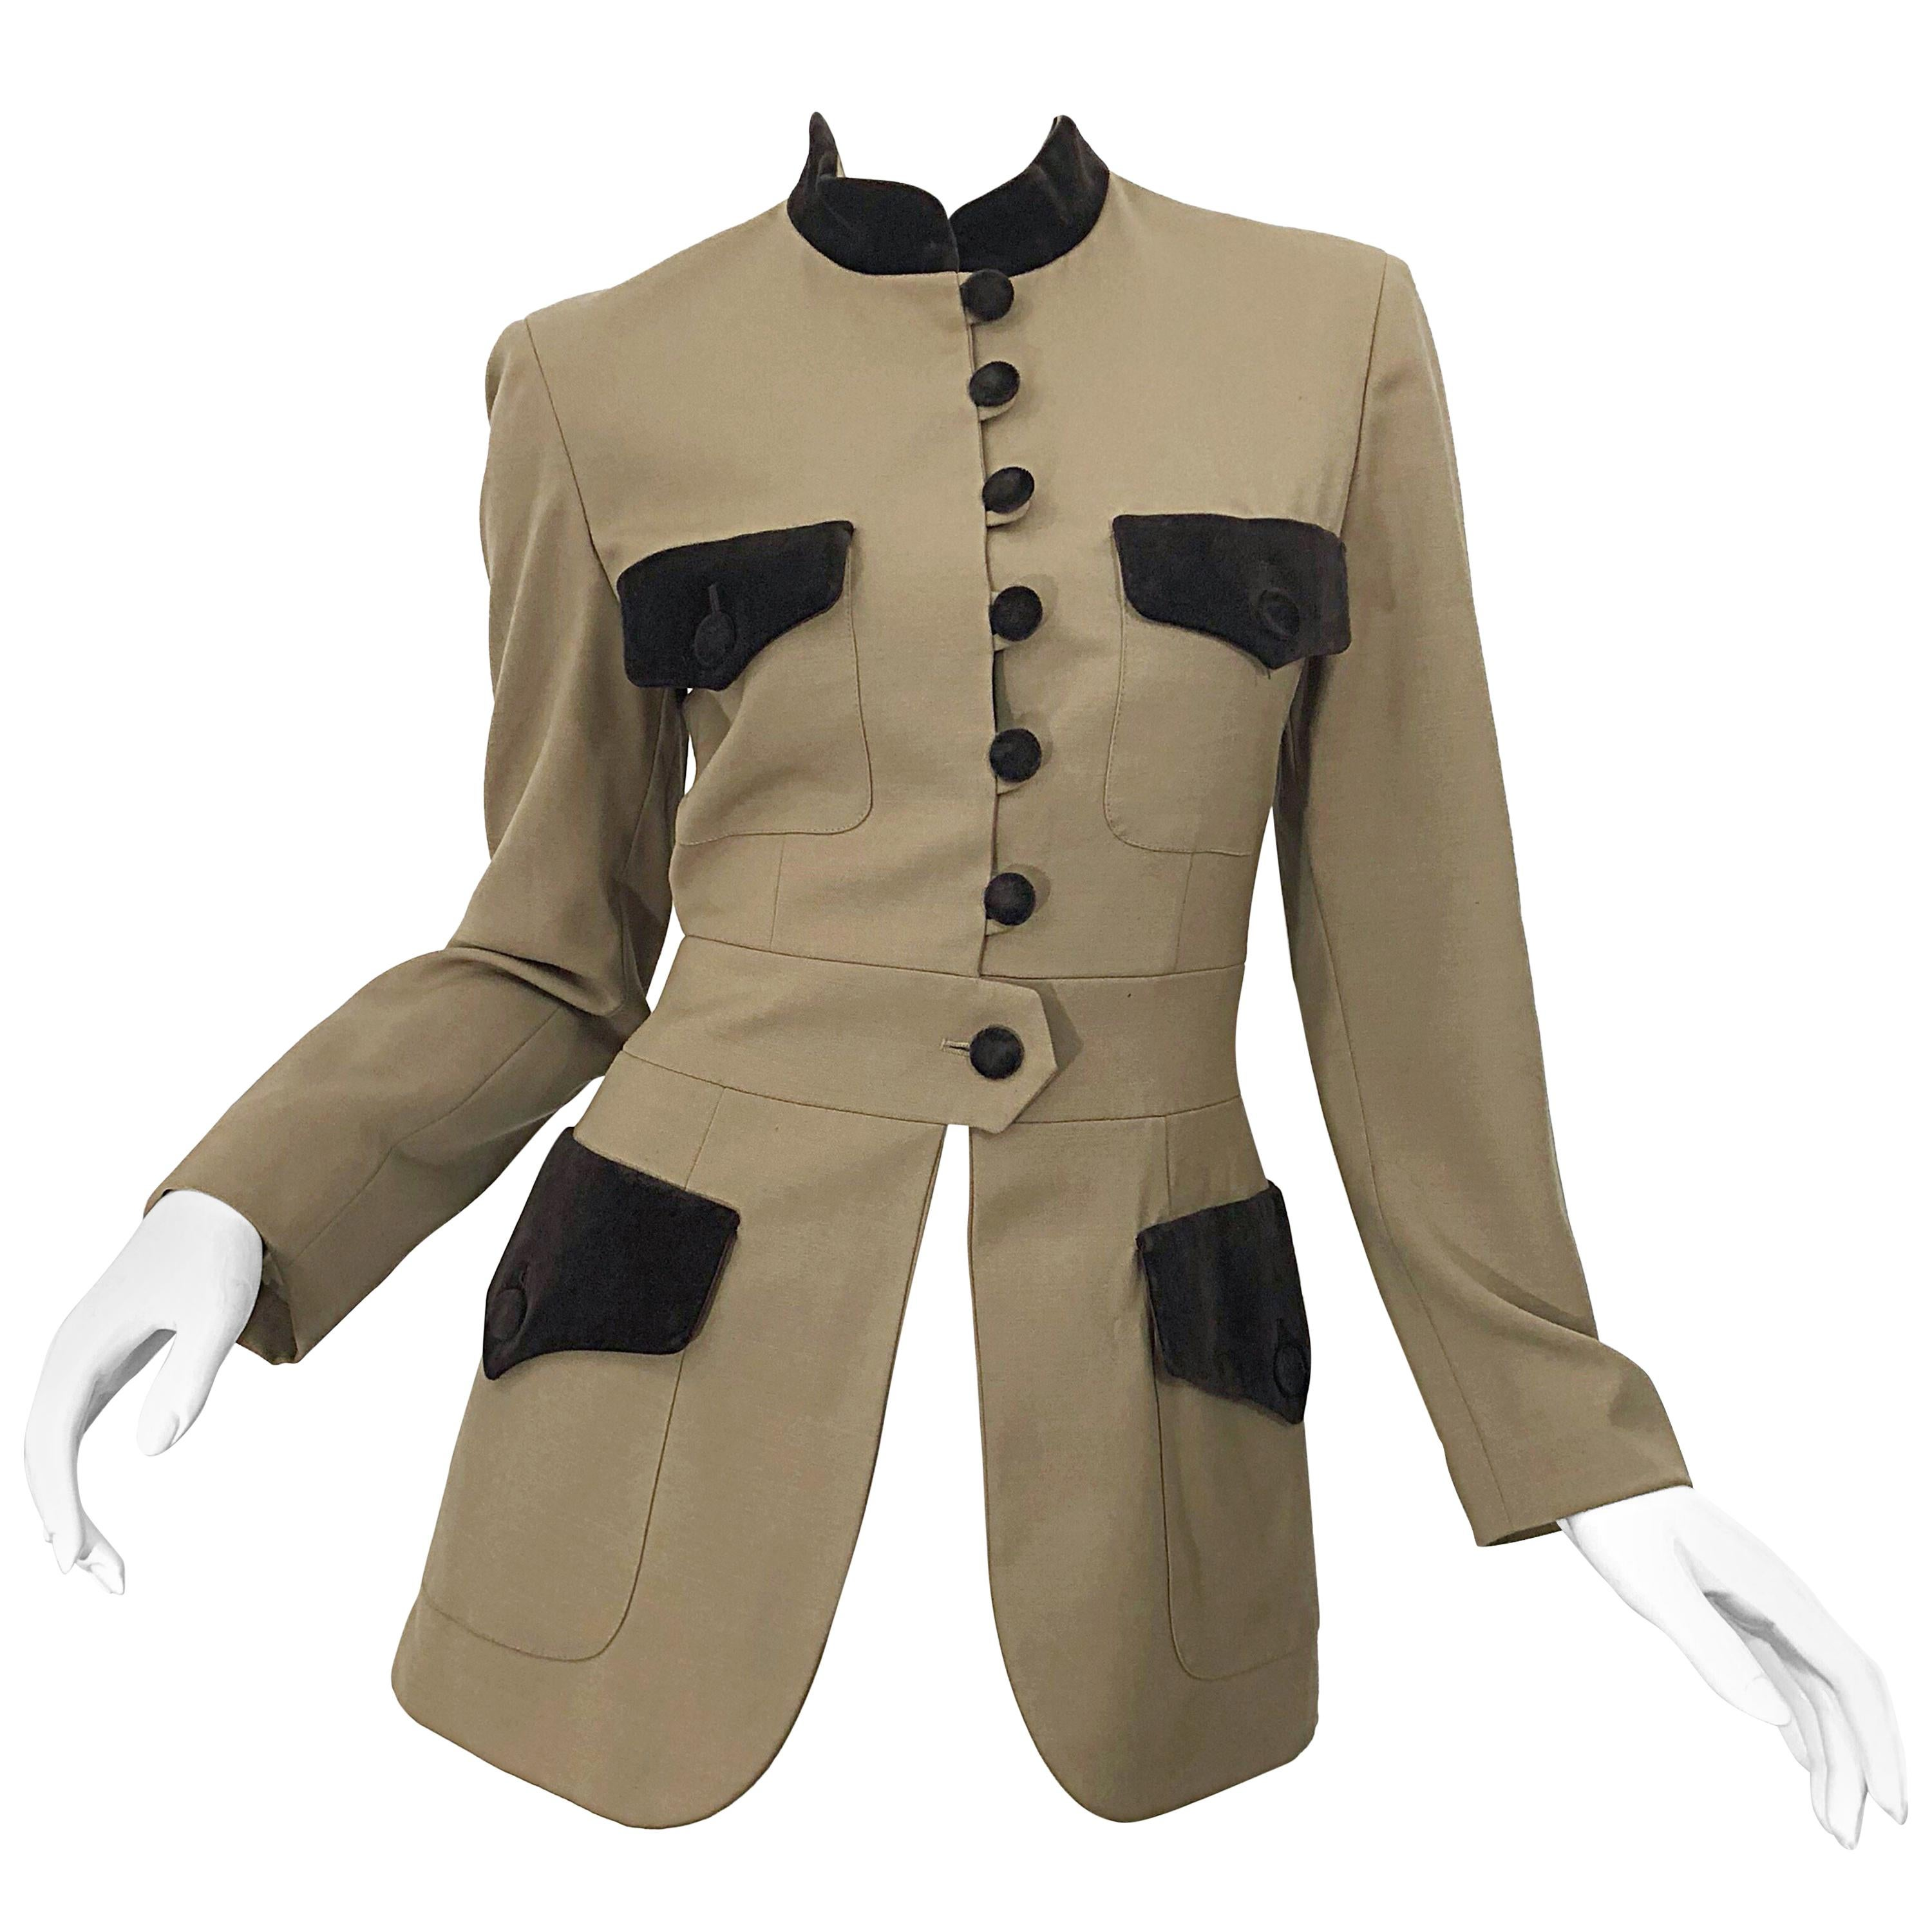 1990s Moschino Cheap & Chic Sz 8 Tan Brown Military Band Inspired Vintage Jacket